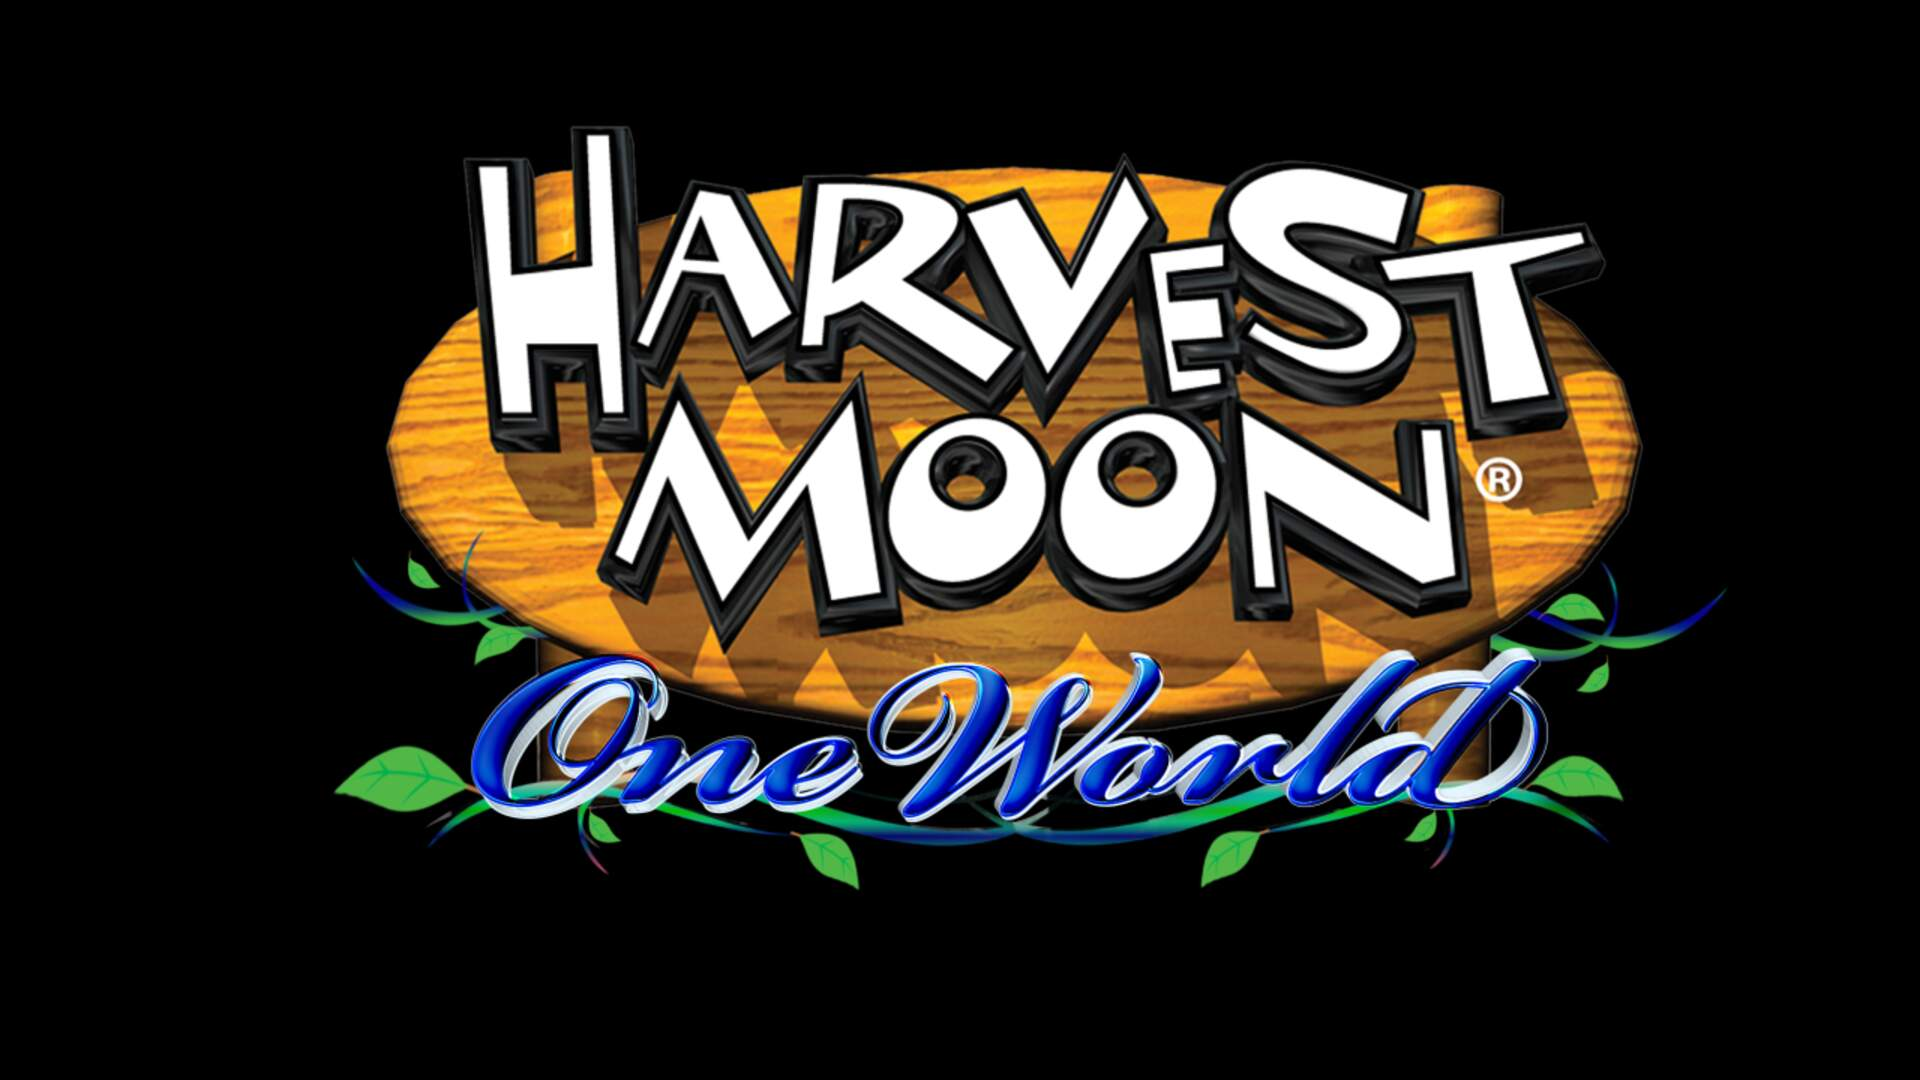 A New Harvest Moon With An Entire World to Explore Is Coming This Year